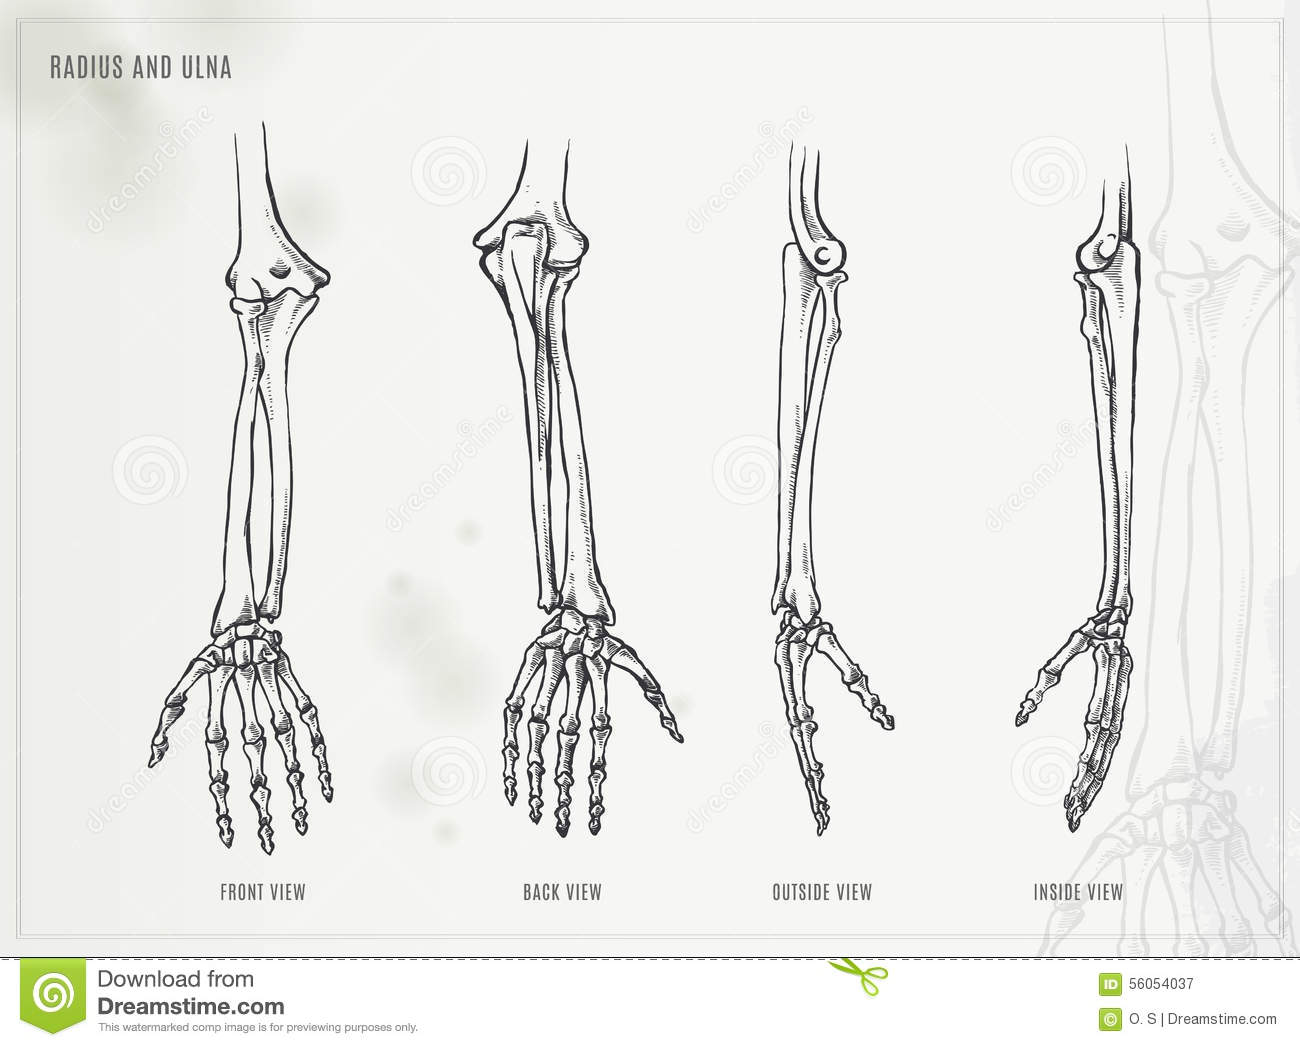 Ulna and radius stock vector. Illustration of metacarpal - 56054037